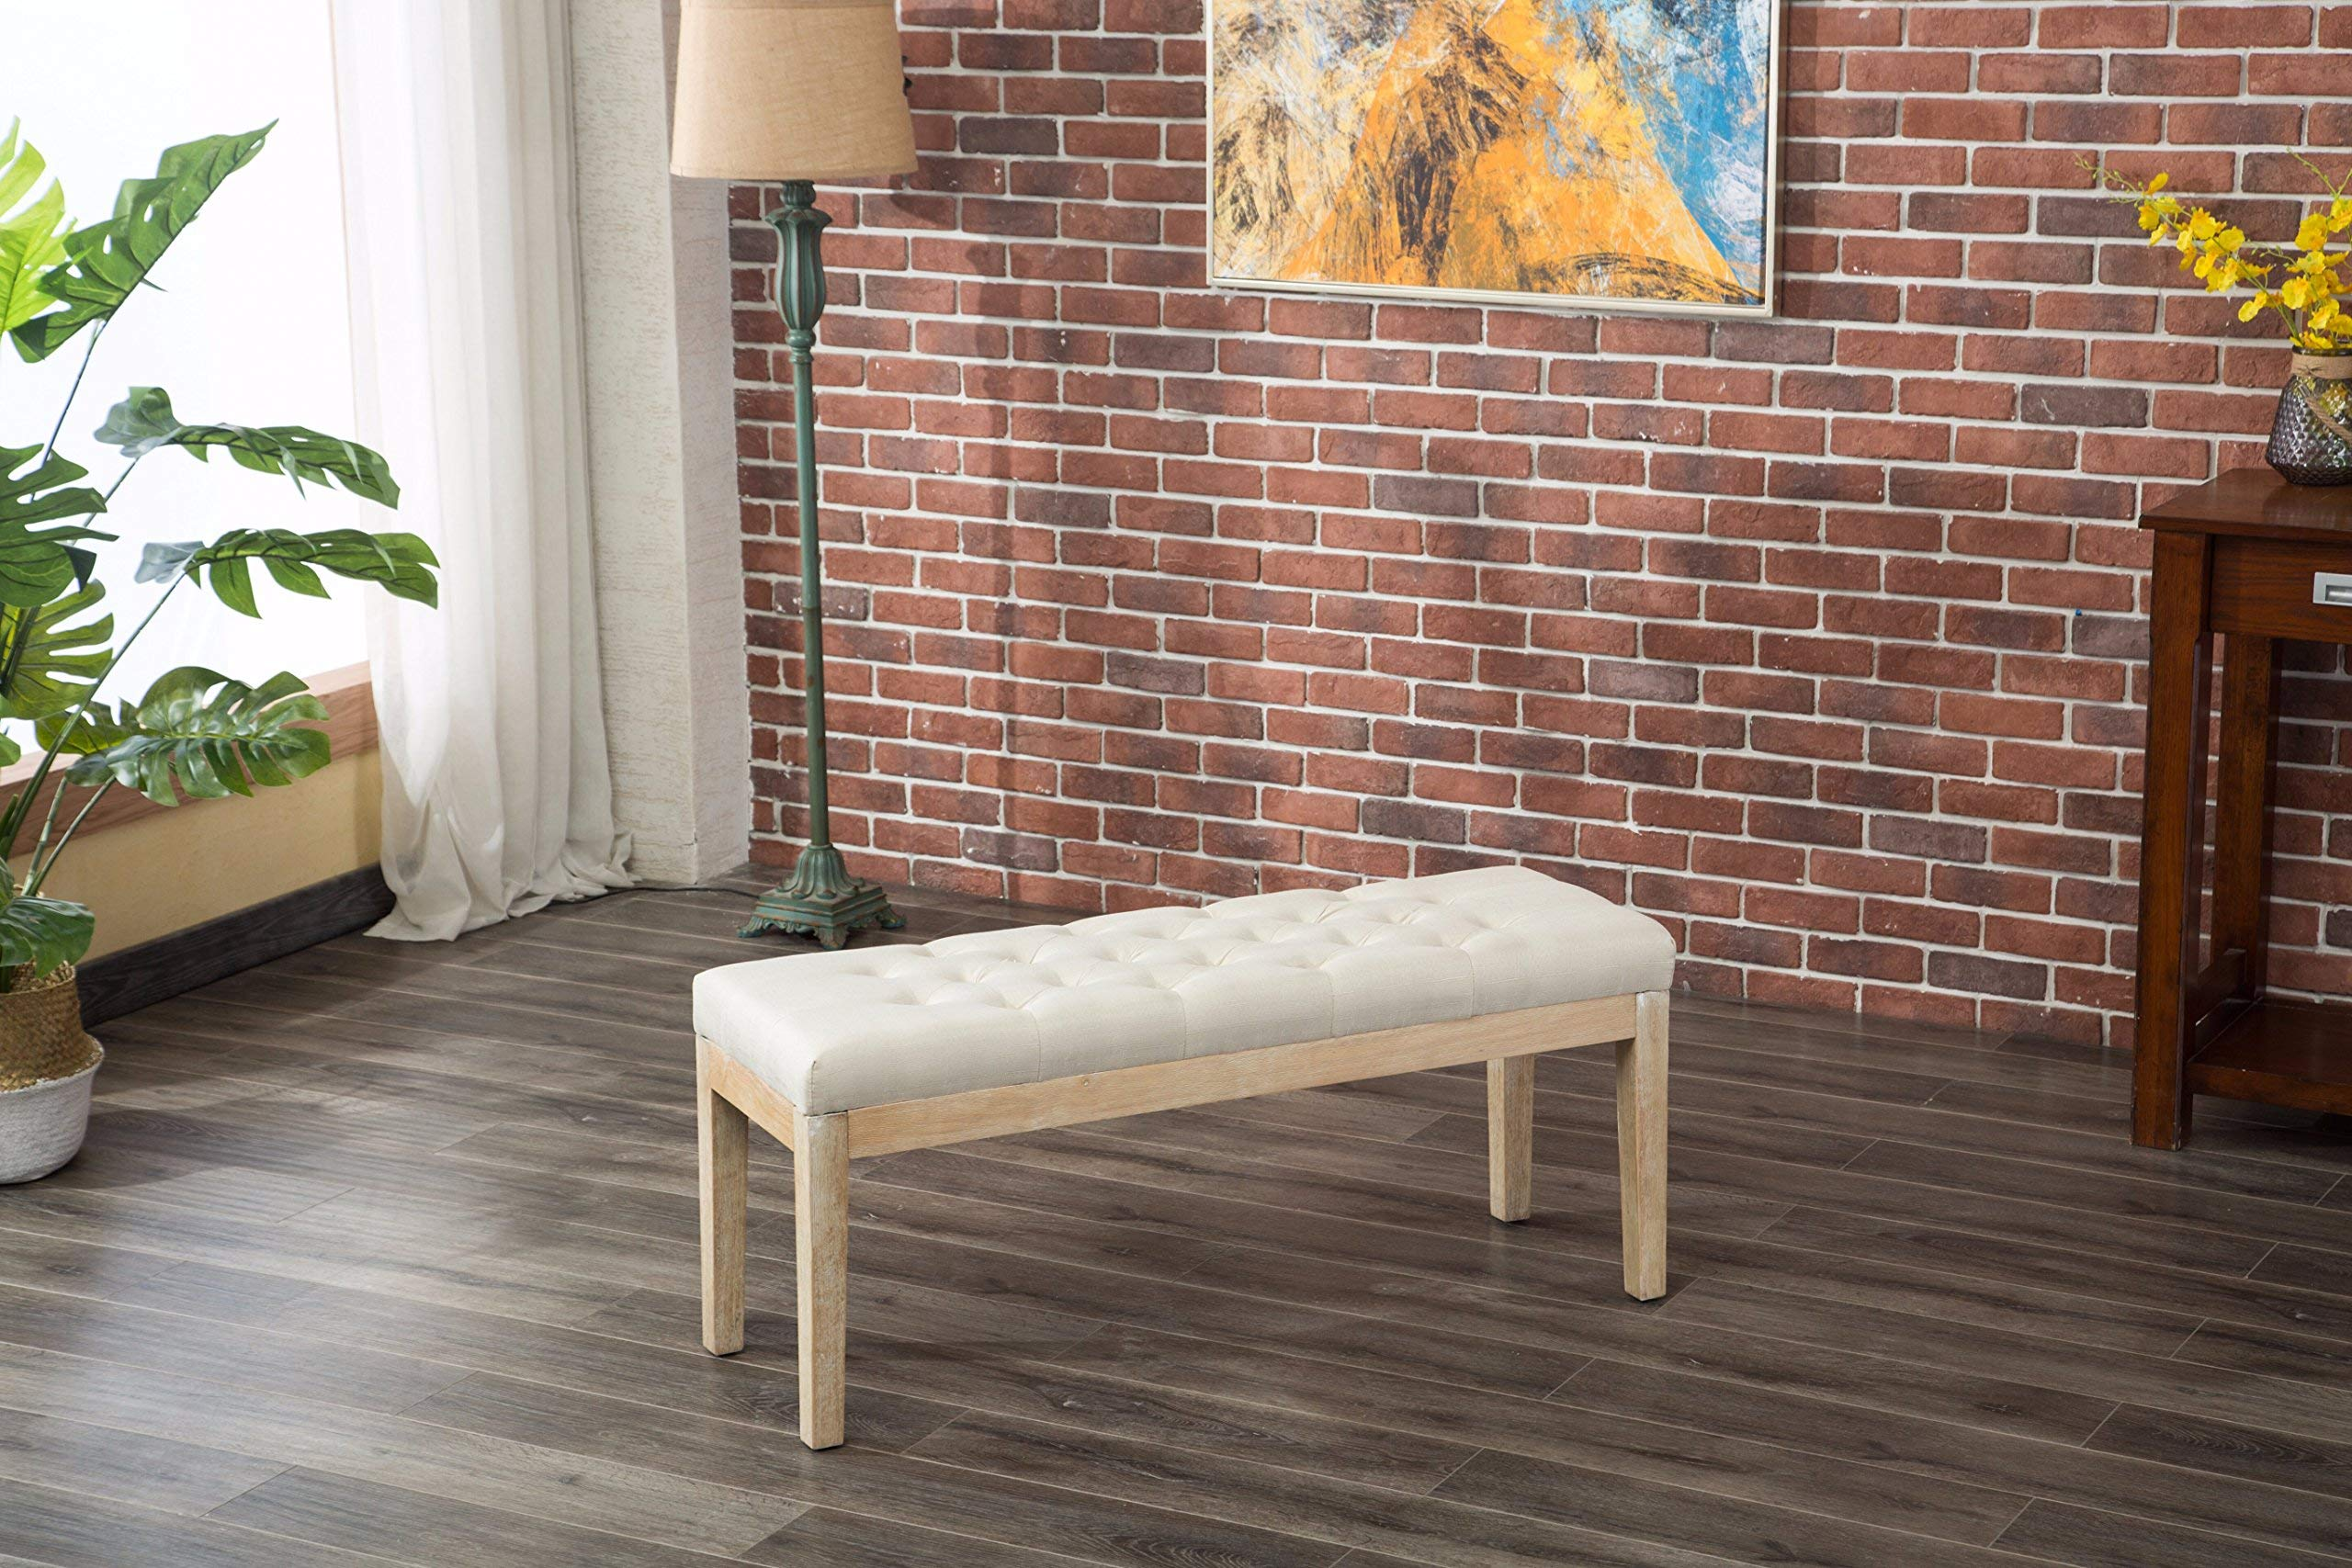 Roundhill Furniture CB171TA Mod Urban Style Solid Wood Button Tufted Fabric Dining Bench, Beige